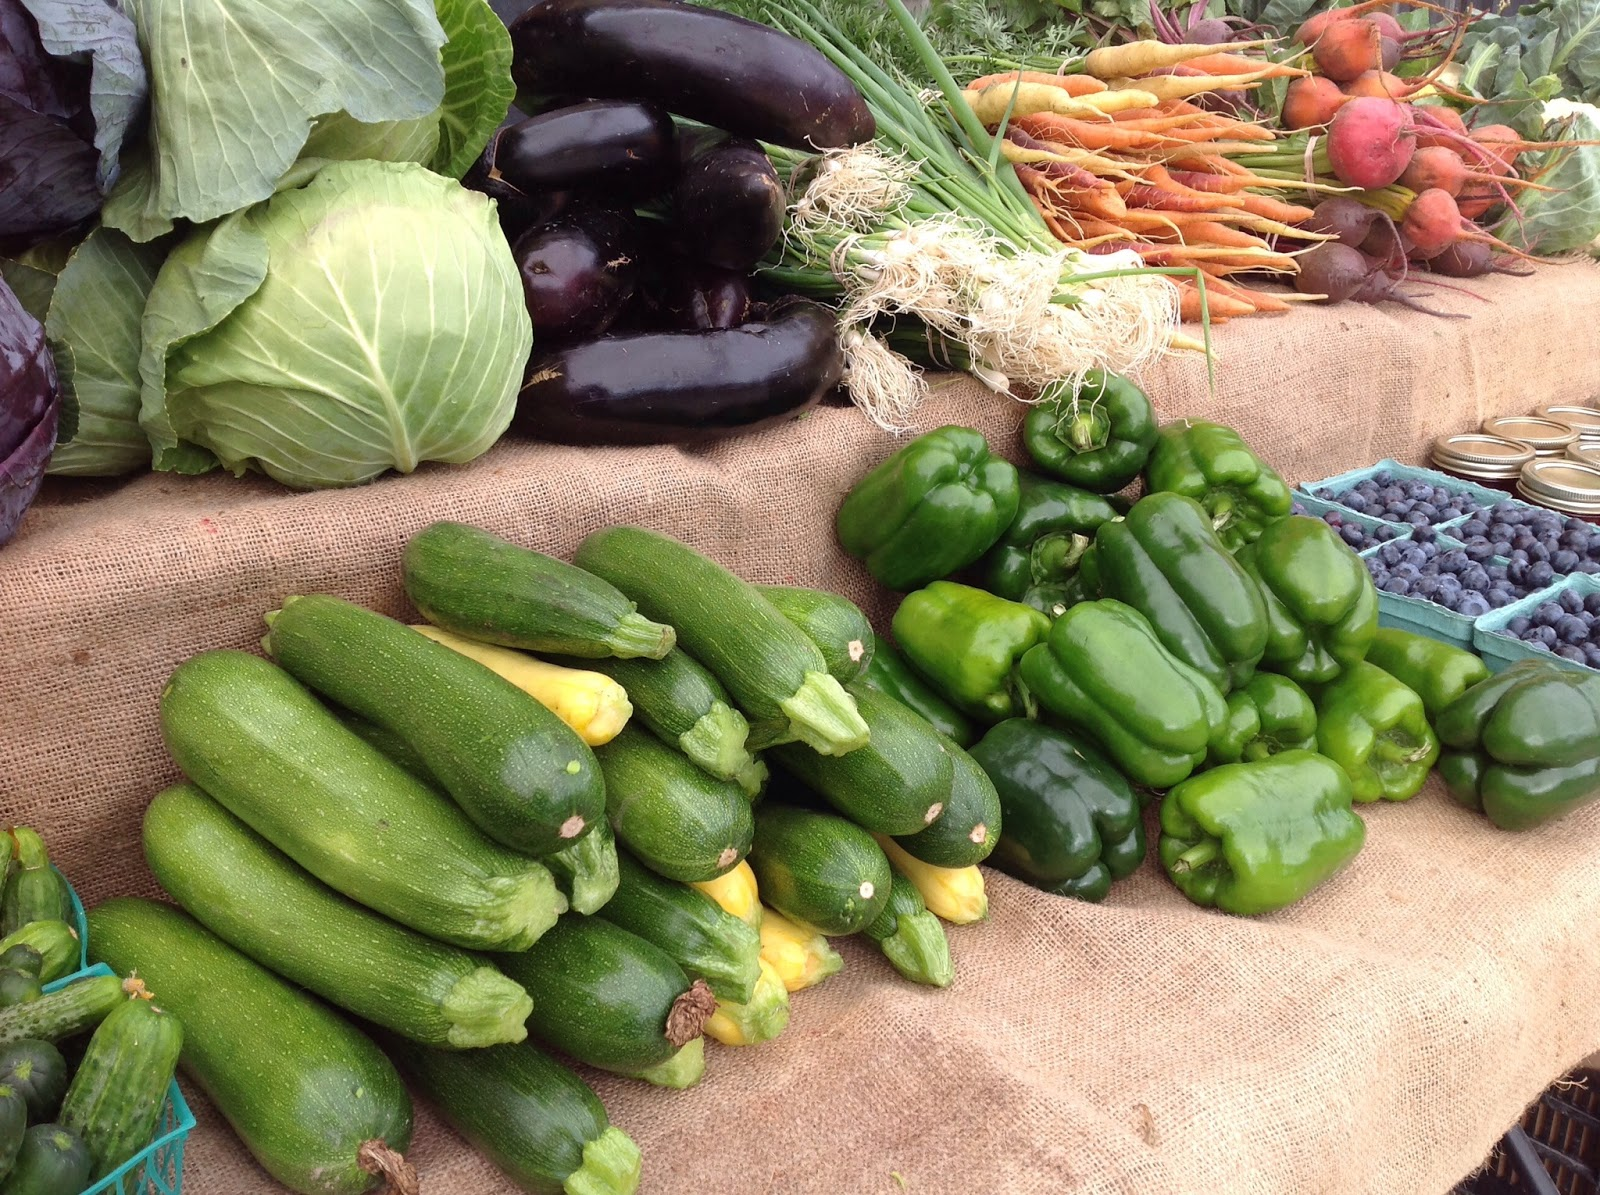 Vegetables from Fosters Family Farm at the Manotick Farmers Market